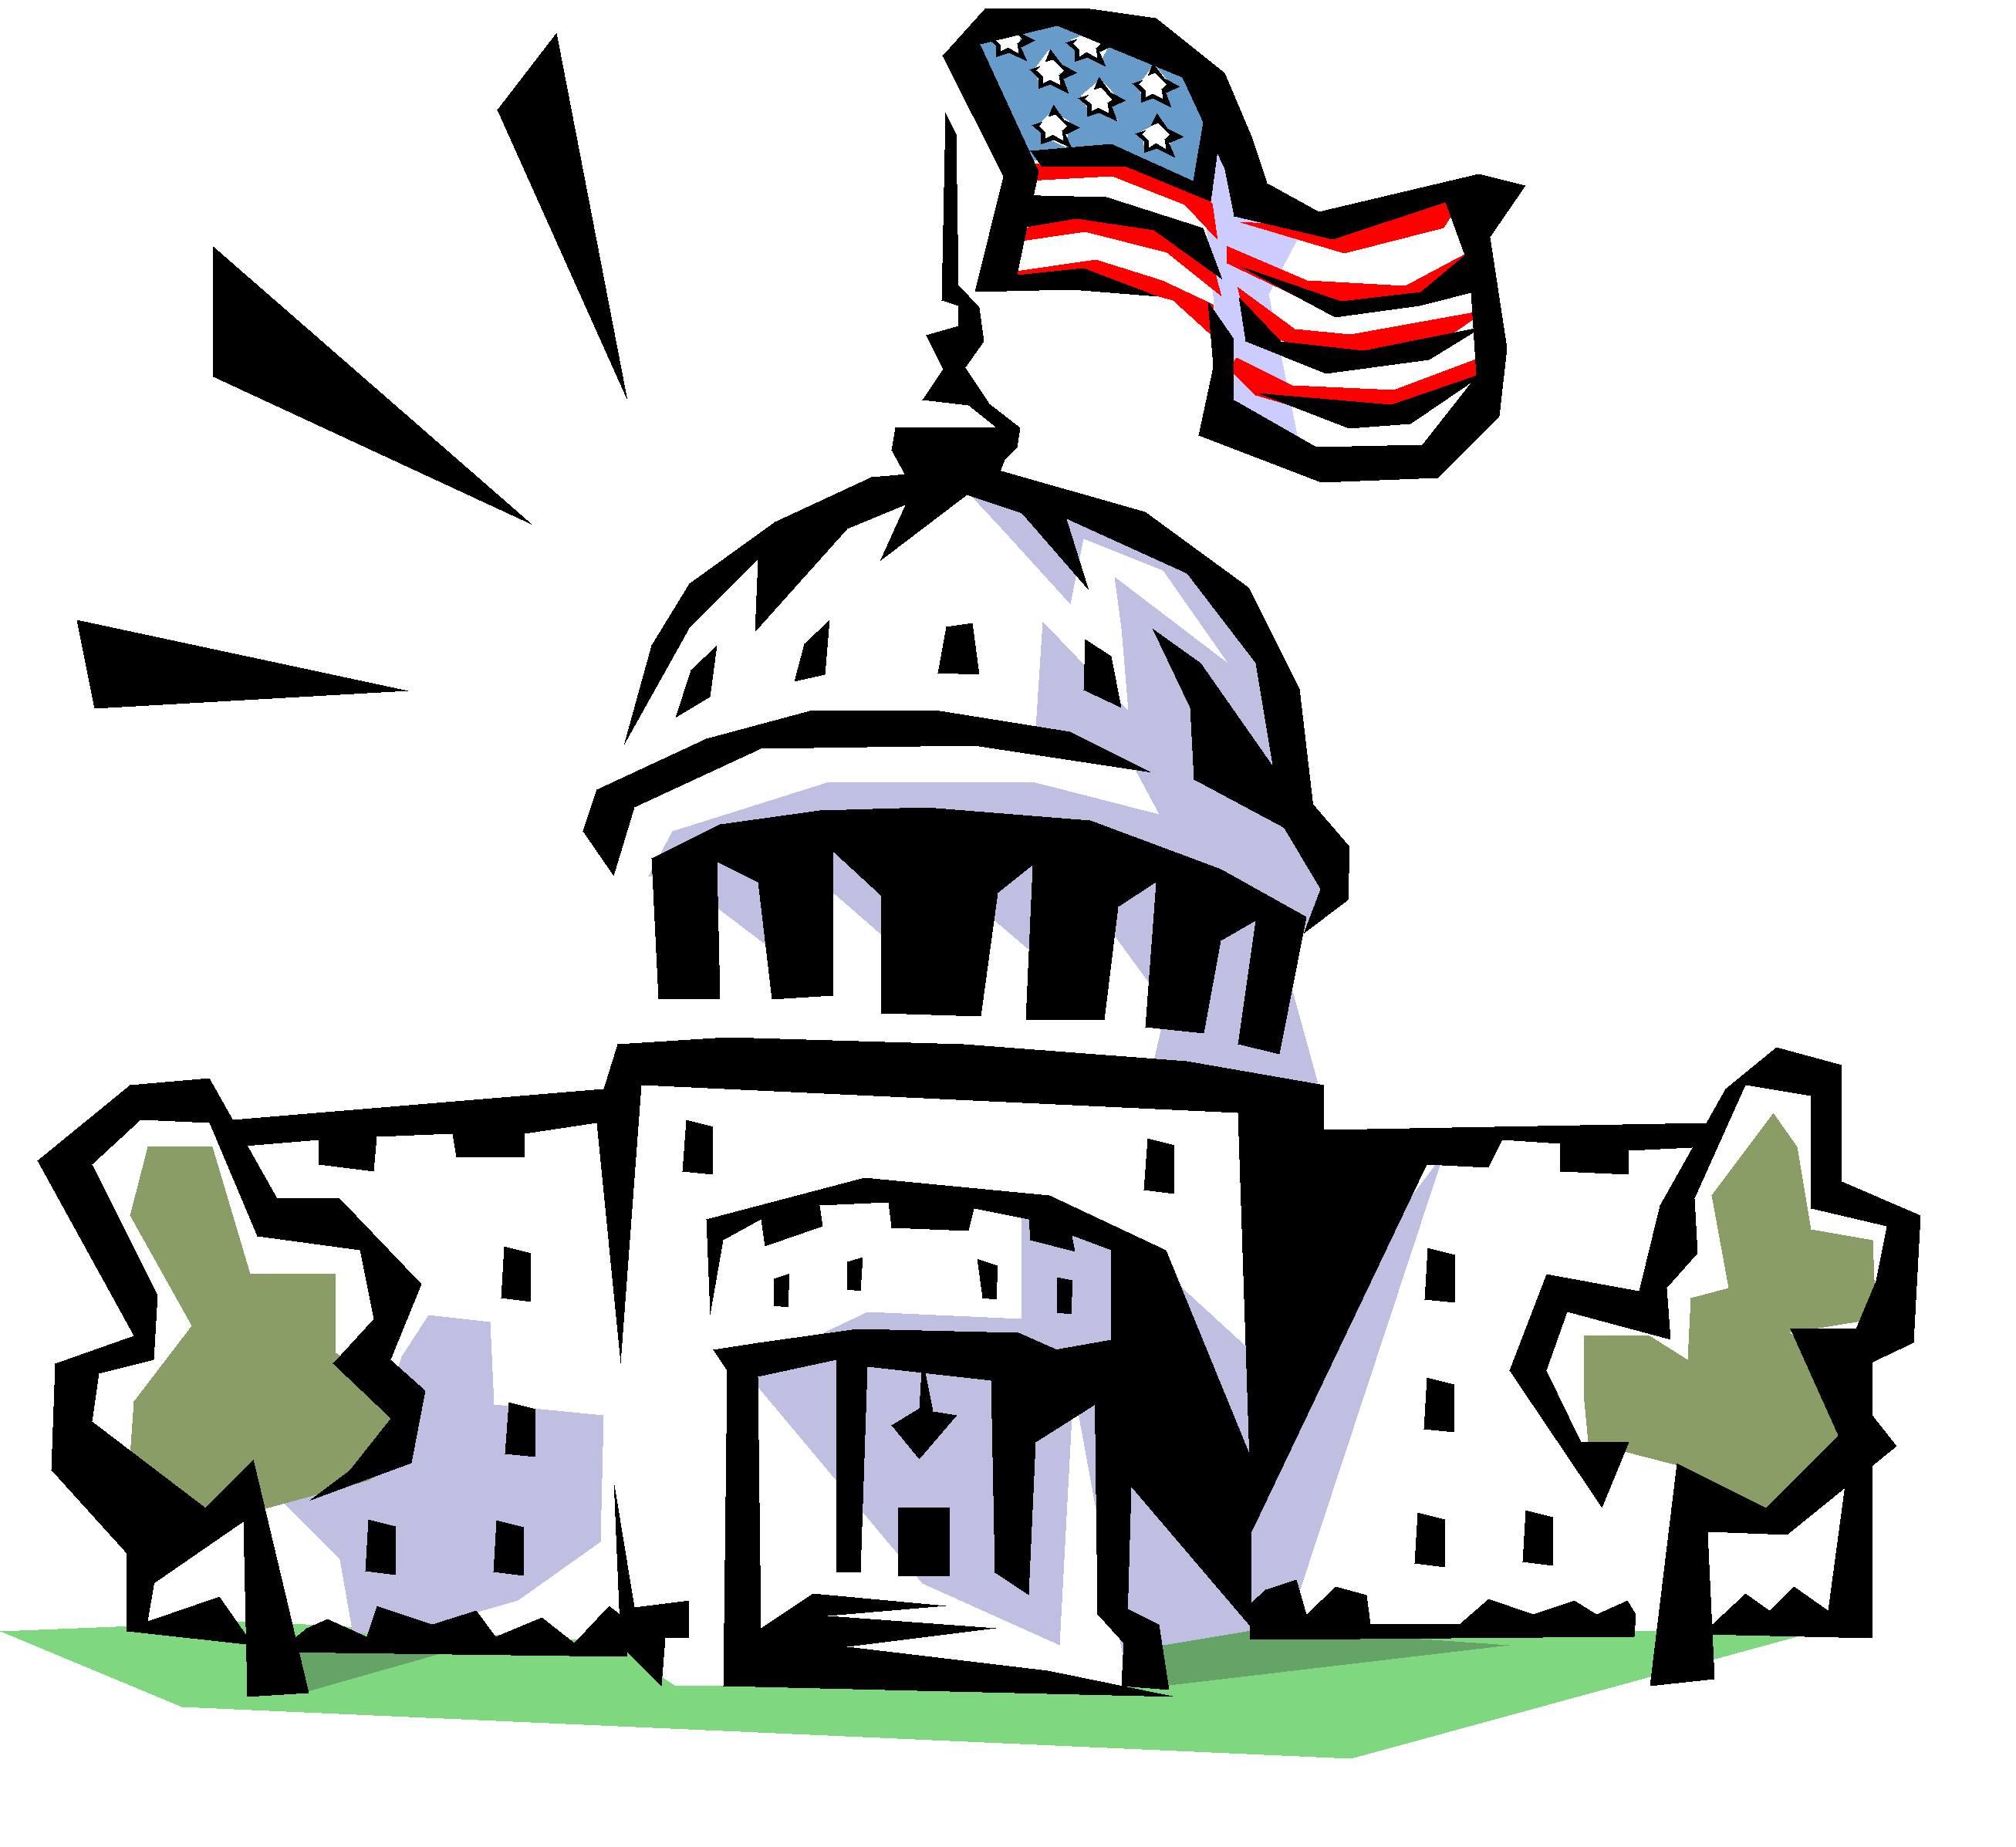 Government Clip Art - ClipArt Best